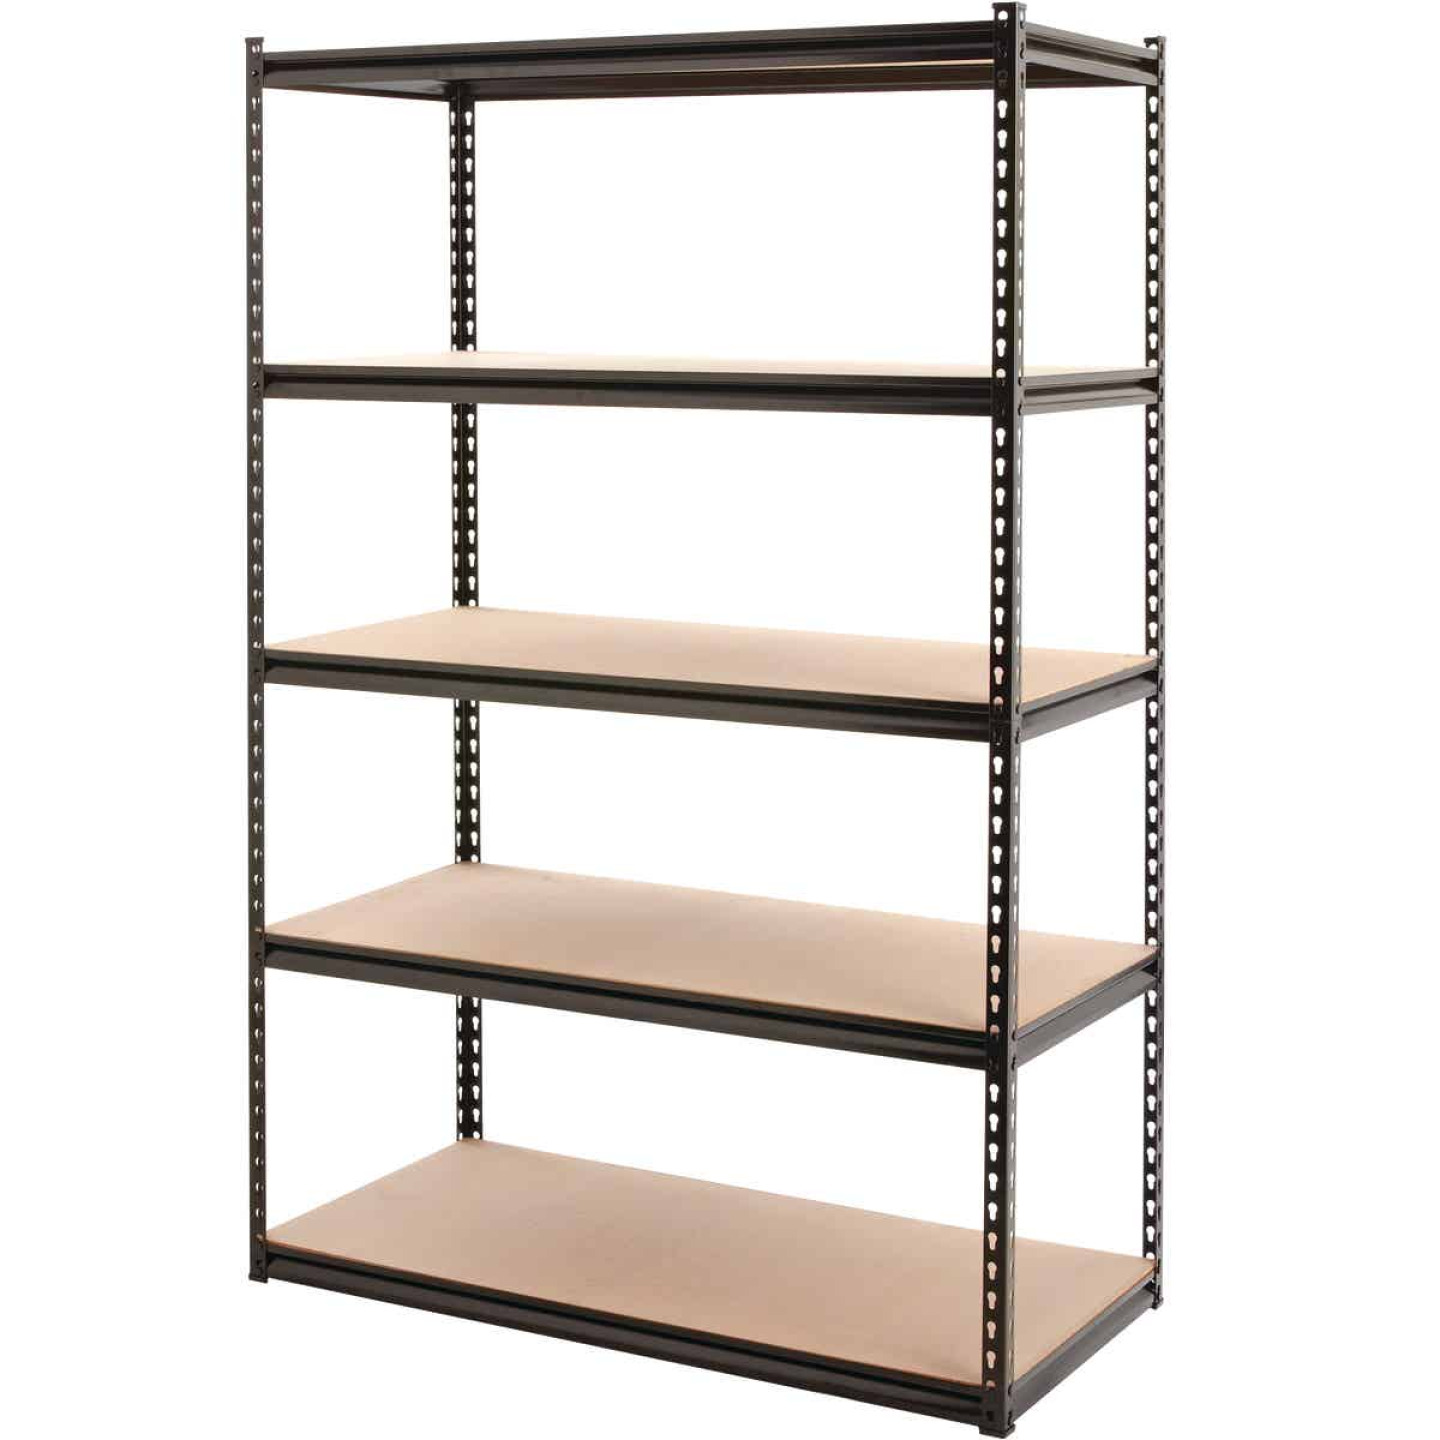 Z-Beam 48 In. x 72 In. x 24 In. Black Steel 5-Tier Shelving Image 1